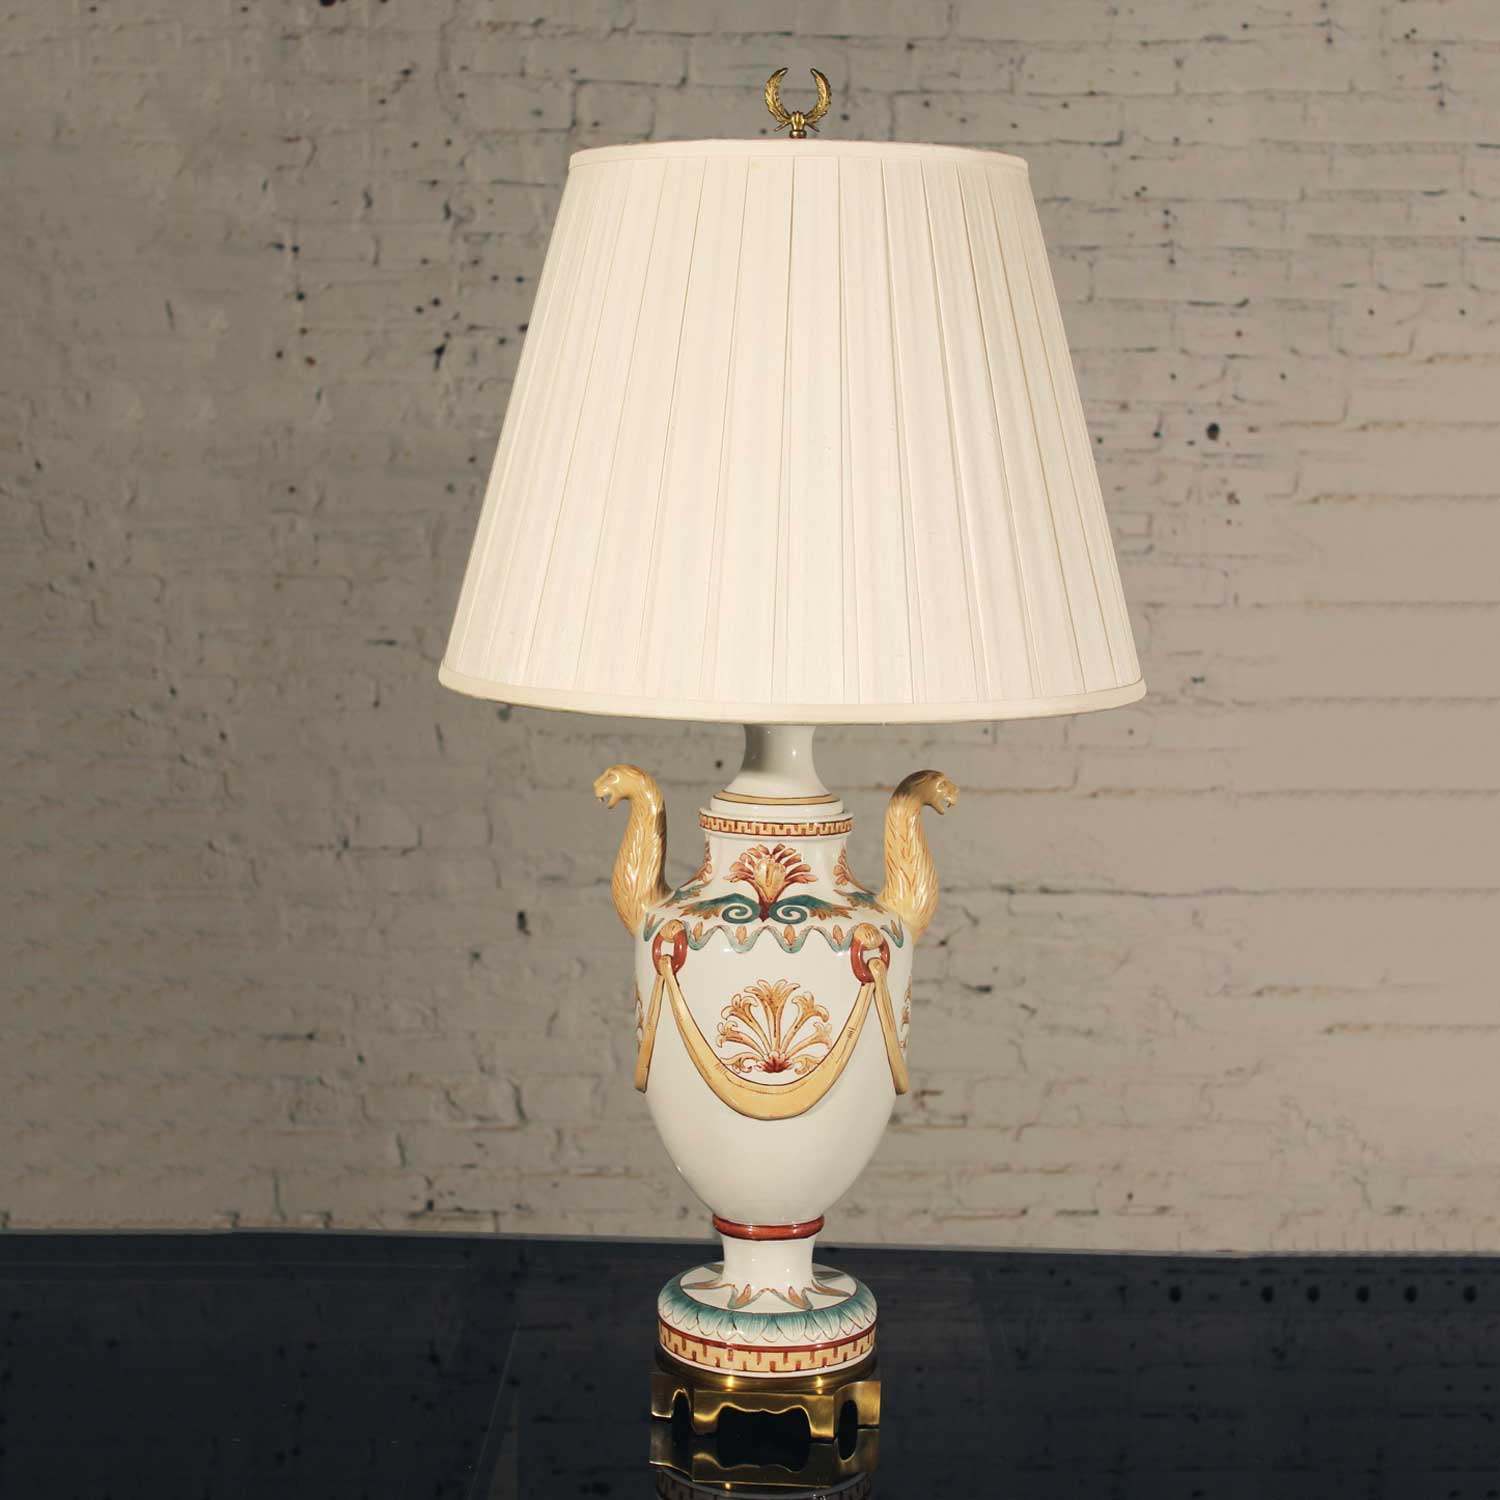 Maitland Smith Porcelain Lamp with Lion Heads – warehouse 5